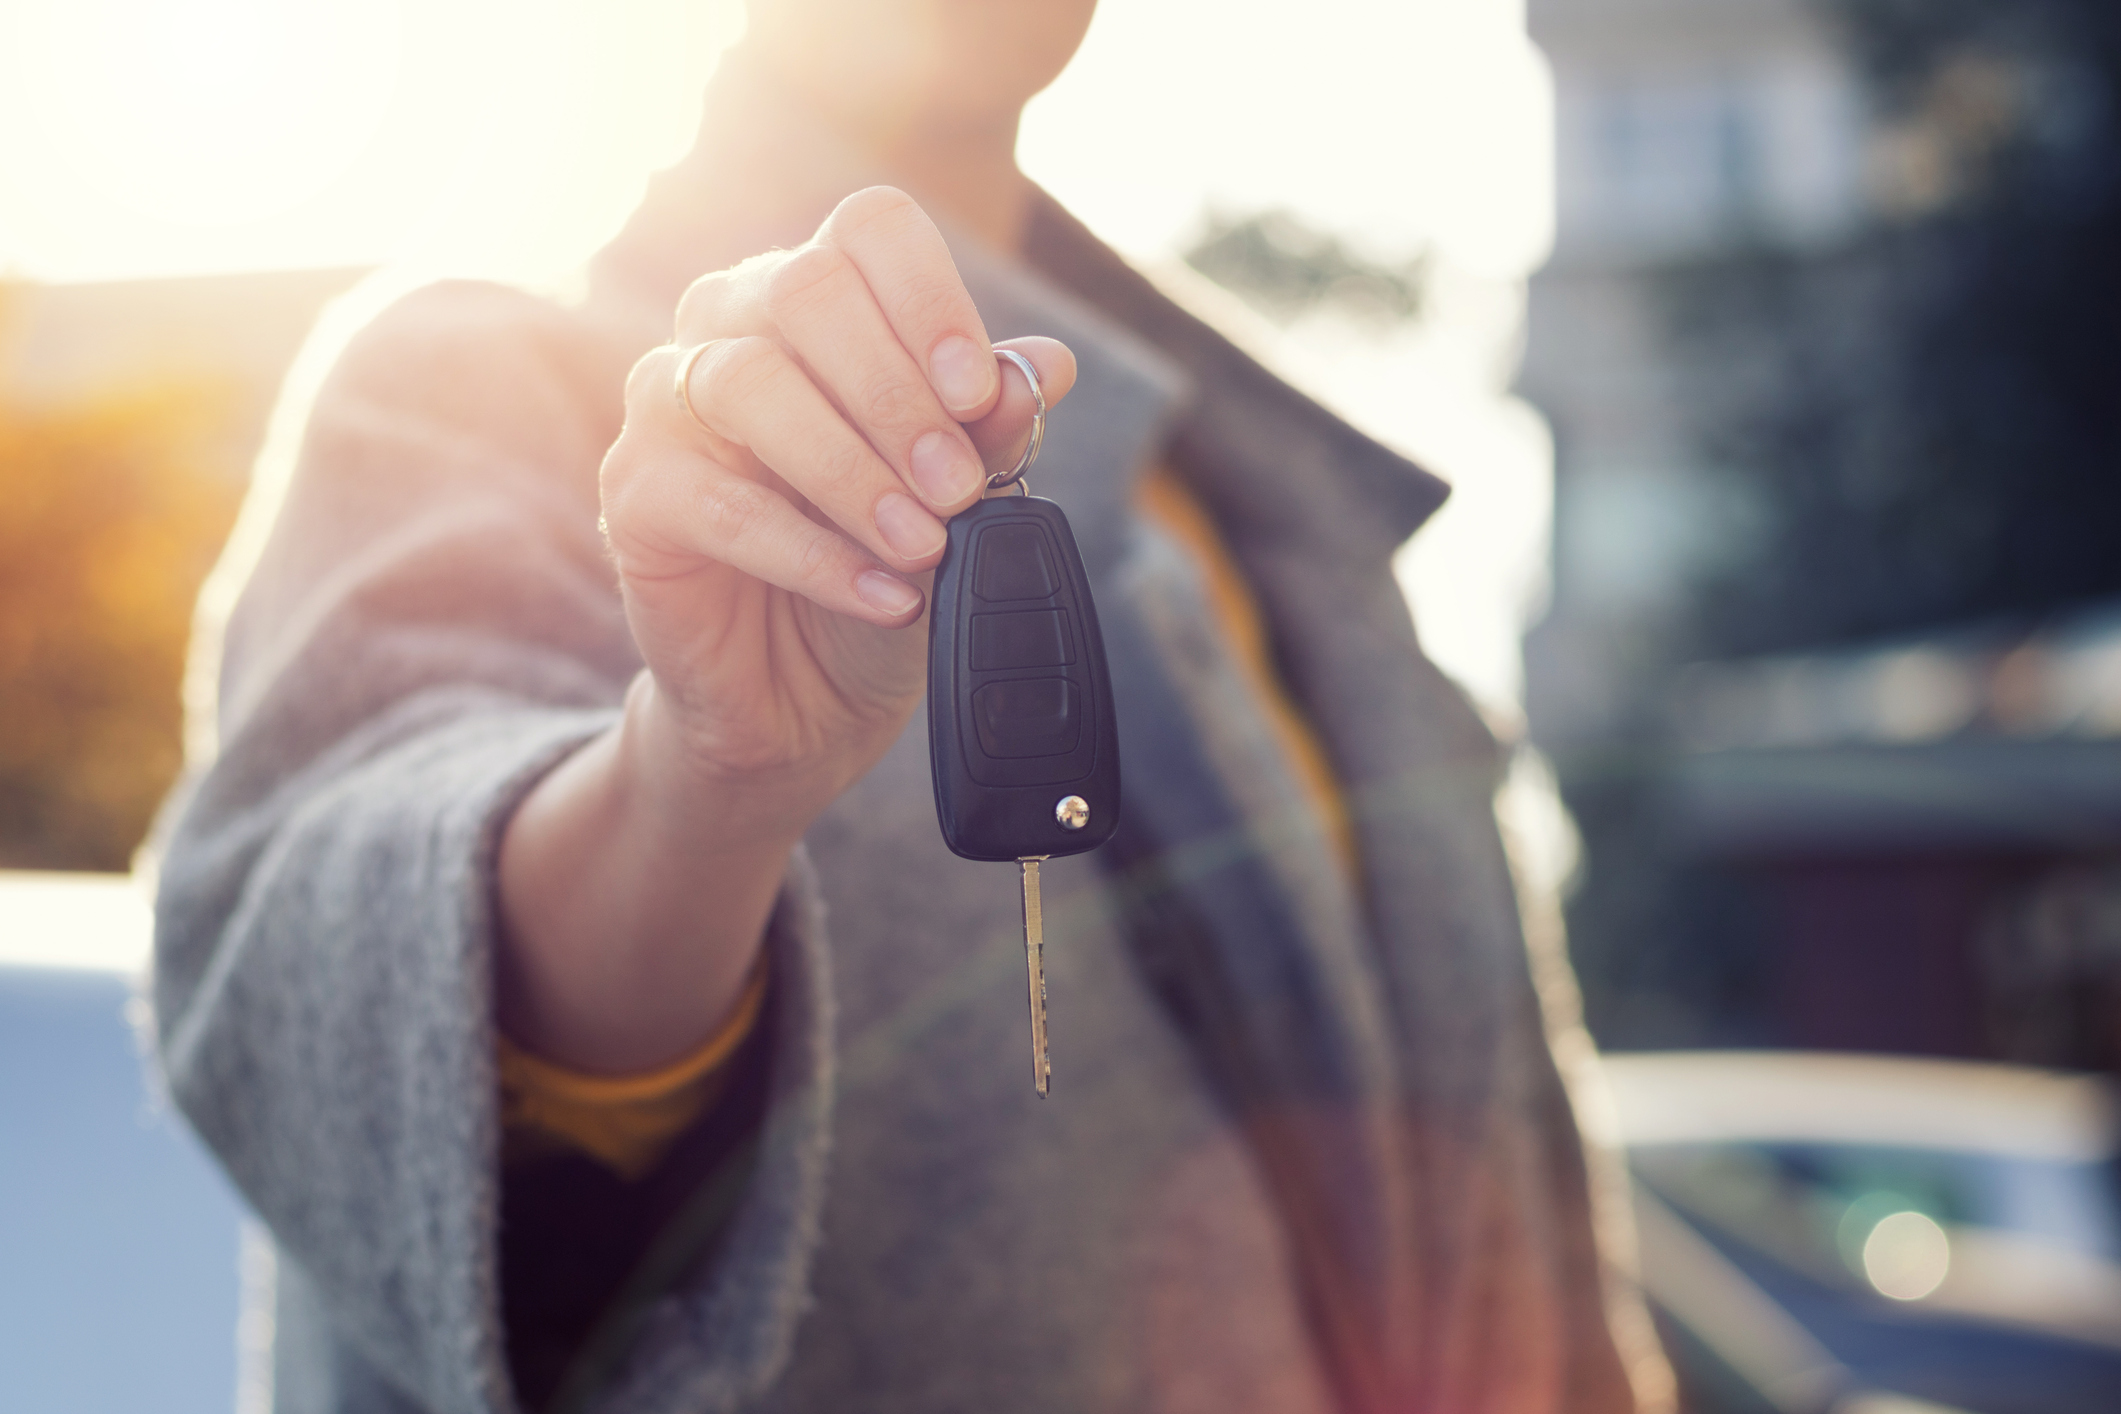 Weatherby Healthcare - locum tenens for nurse practitioners - image of nurse holding car key for test drive